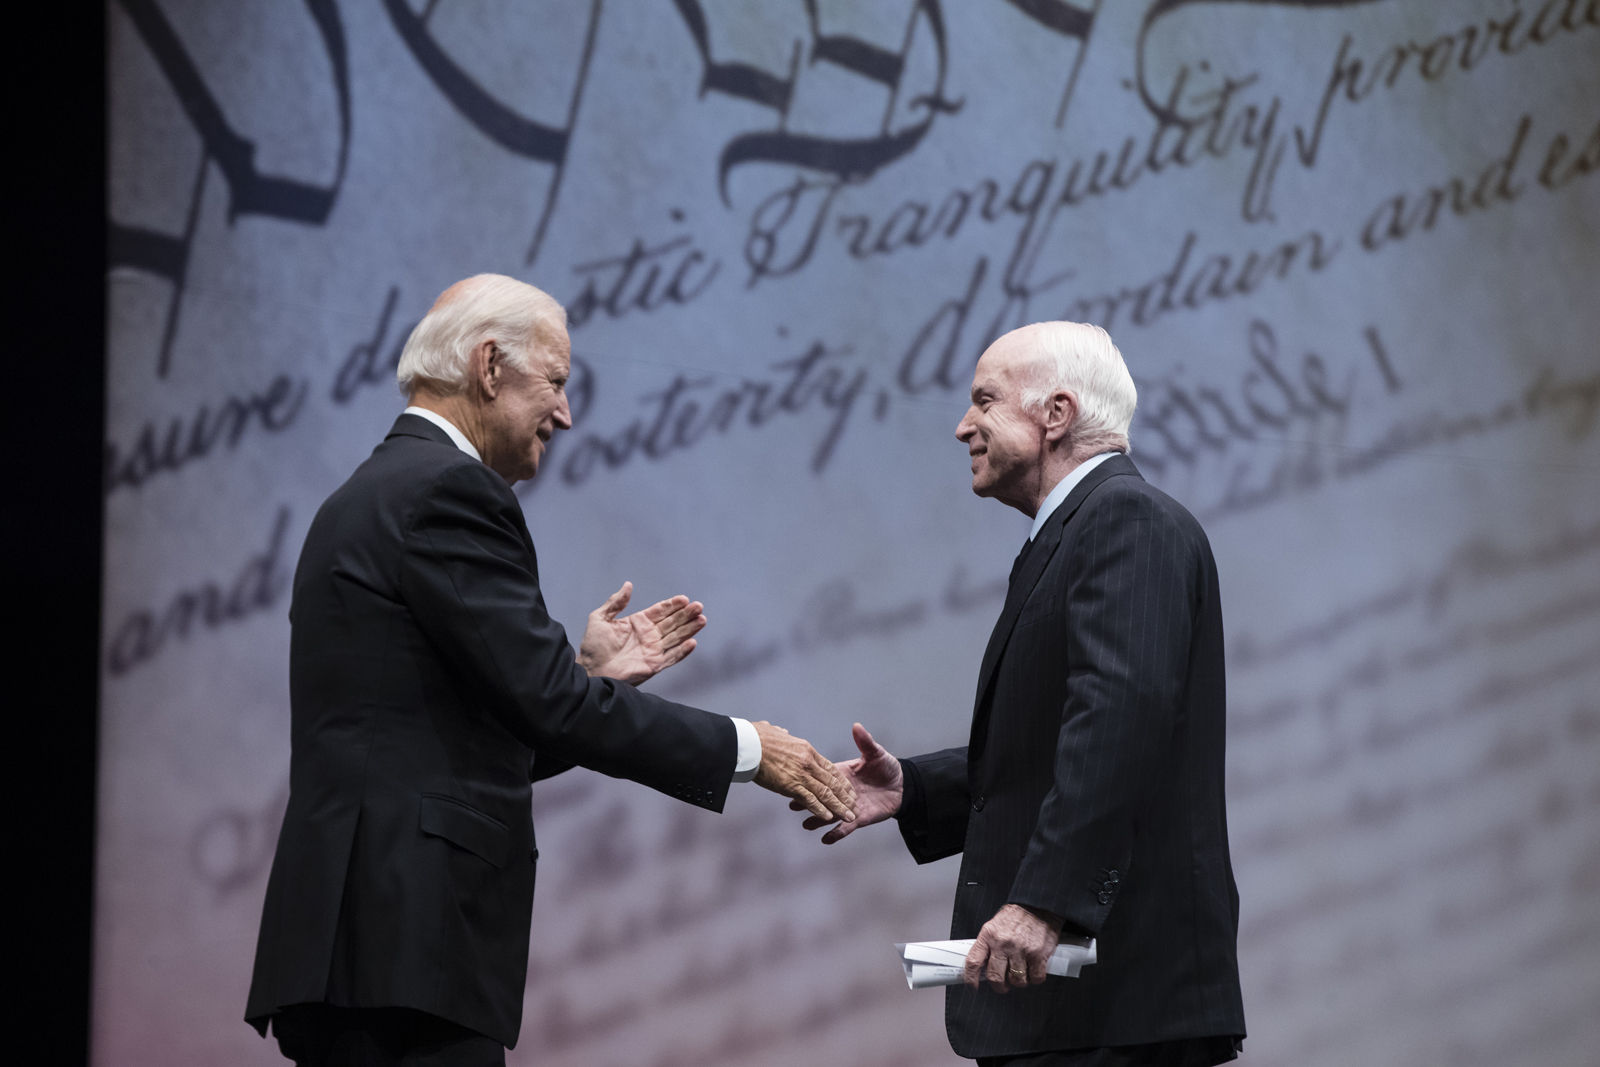 Sen. John McCain, R-Ariz., shakes hands with chair of the National Constitution Center's Board of Trustees, former Vice President Joe Biden after receiving the Liberty Medal in Philadelphia, Monday, Oct. 16, 2017. The honor is given annually to an individual who displays courage and conviction while striving to secure liberty for people worldwide. (AP Photo/Matt Rourke)